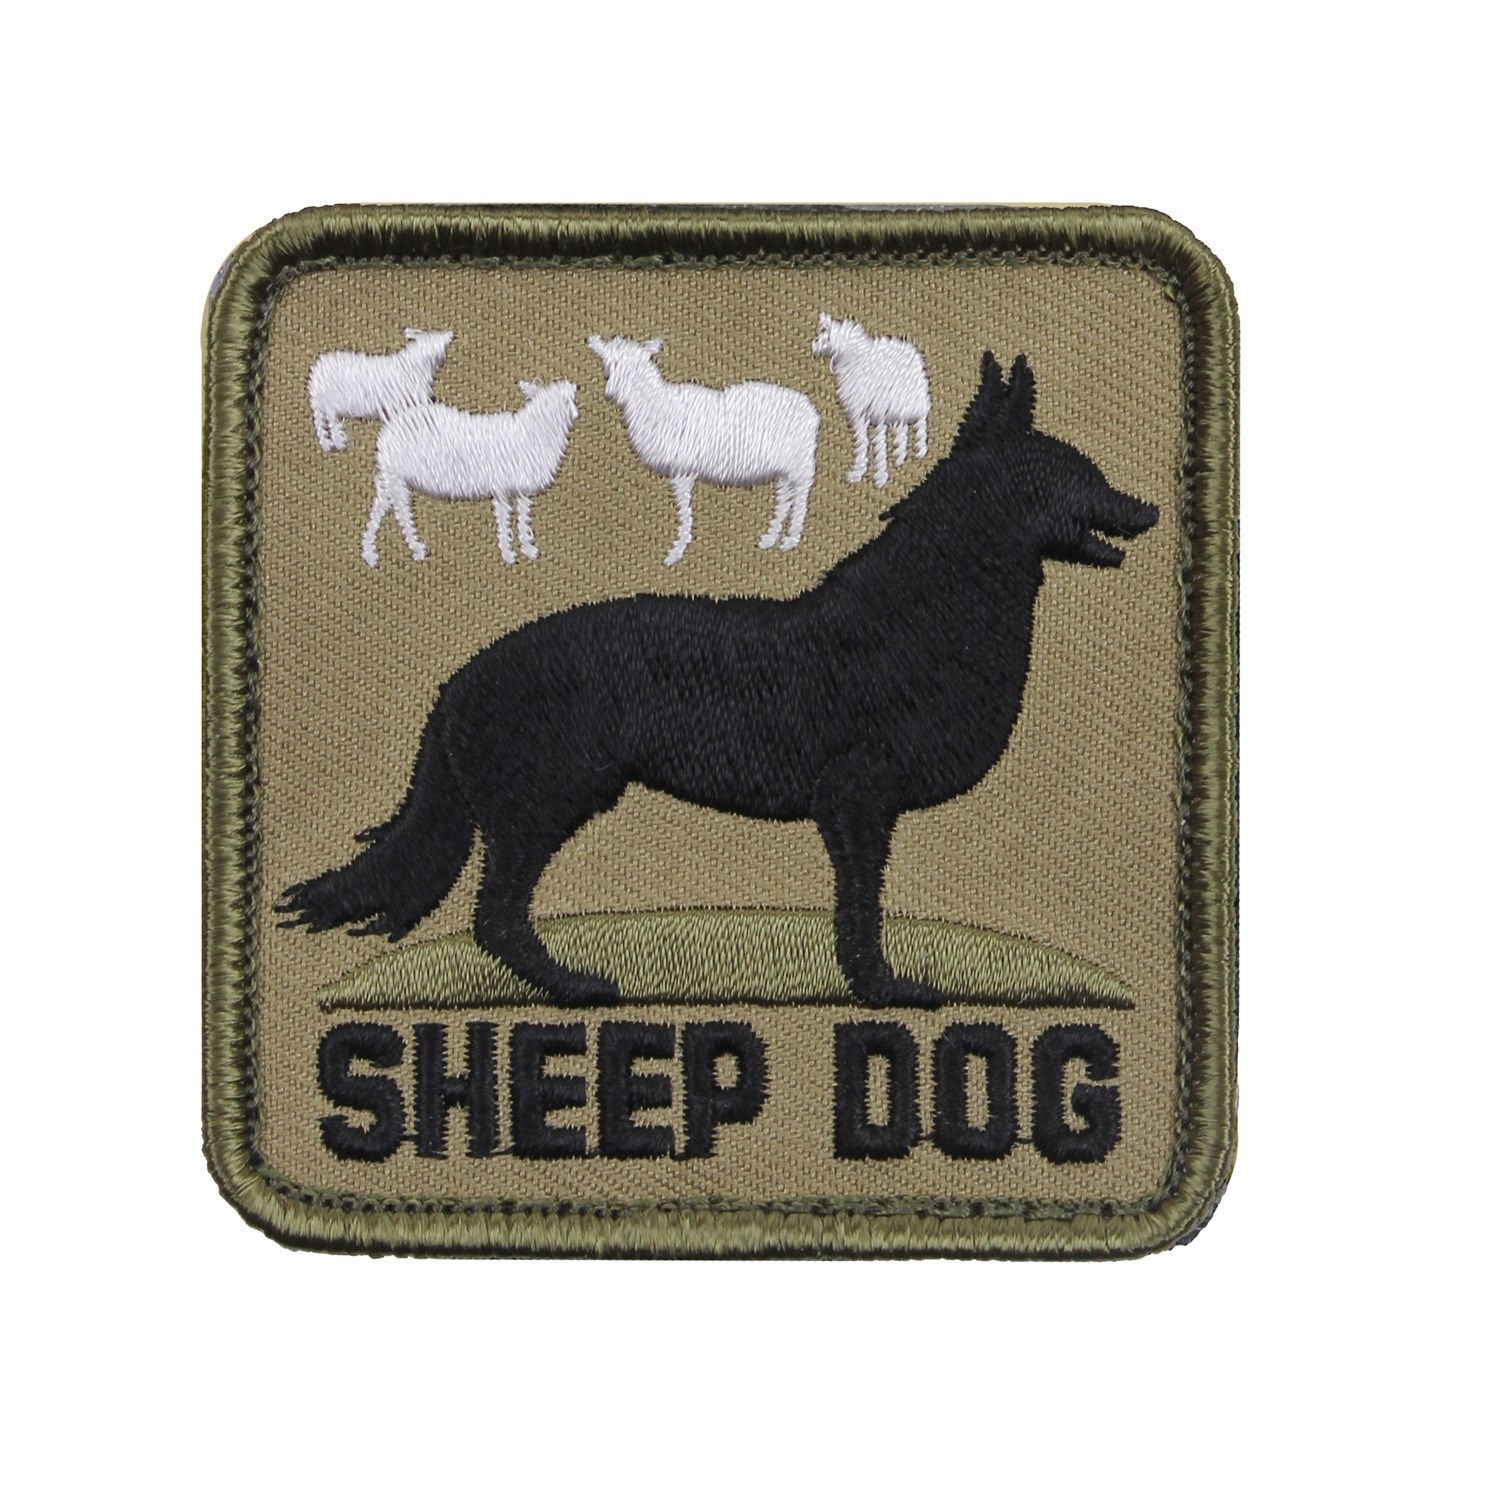 Velcro patch SHEEP DOG ROTHCO 72206 L-11